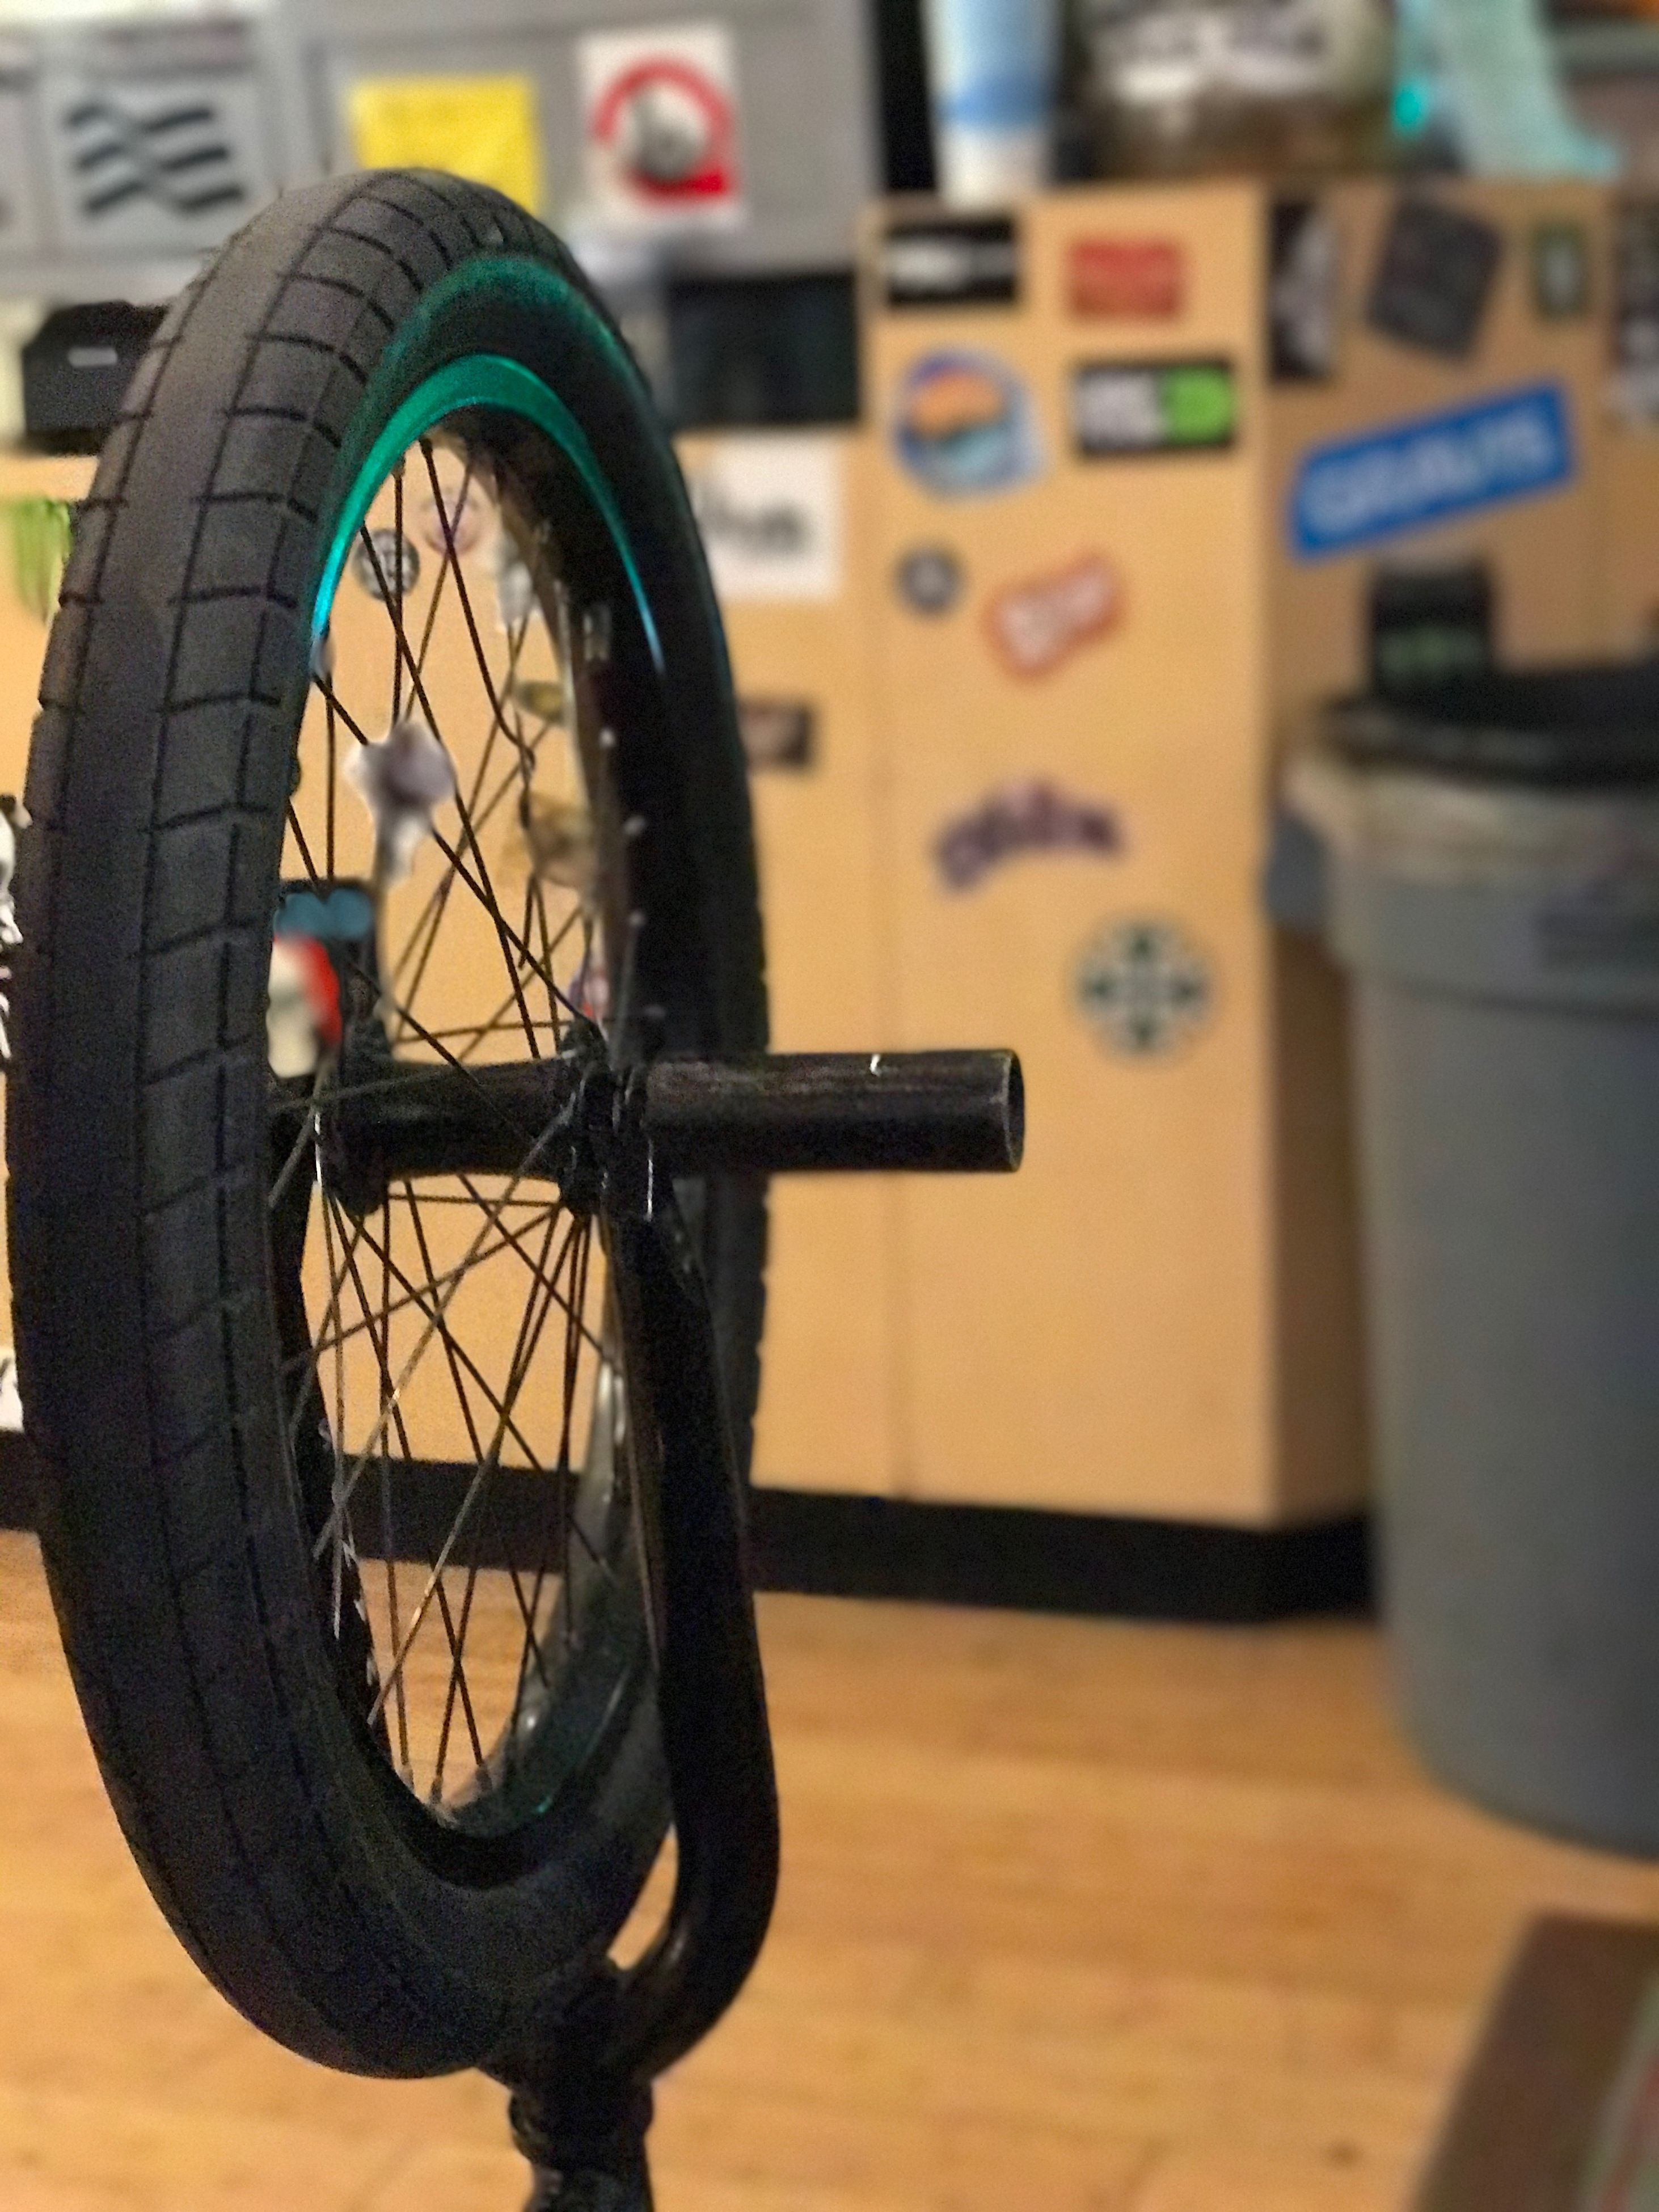 bicycle, wheel, business finance and industry, mode of transport, vehicle part, indoors, no people, pedal, tire, close-up, workshop, day